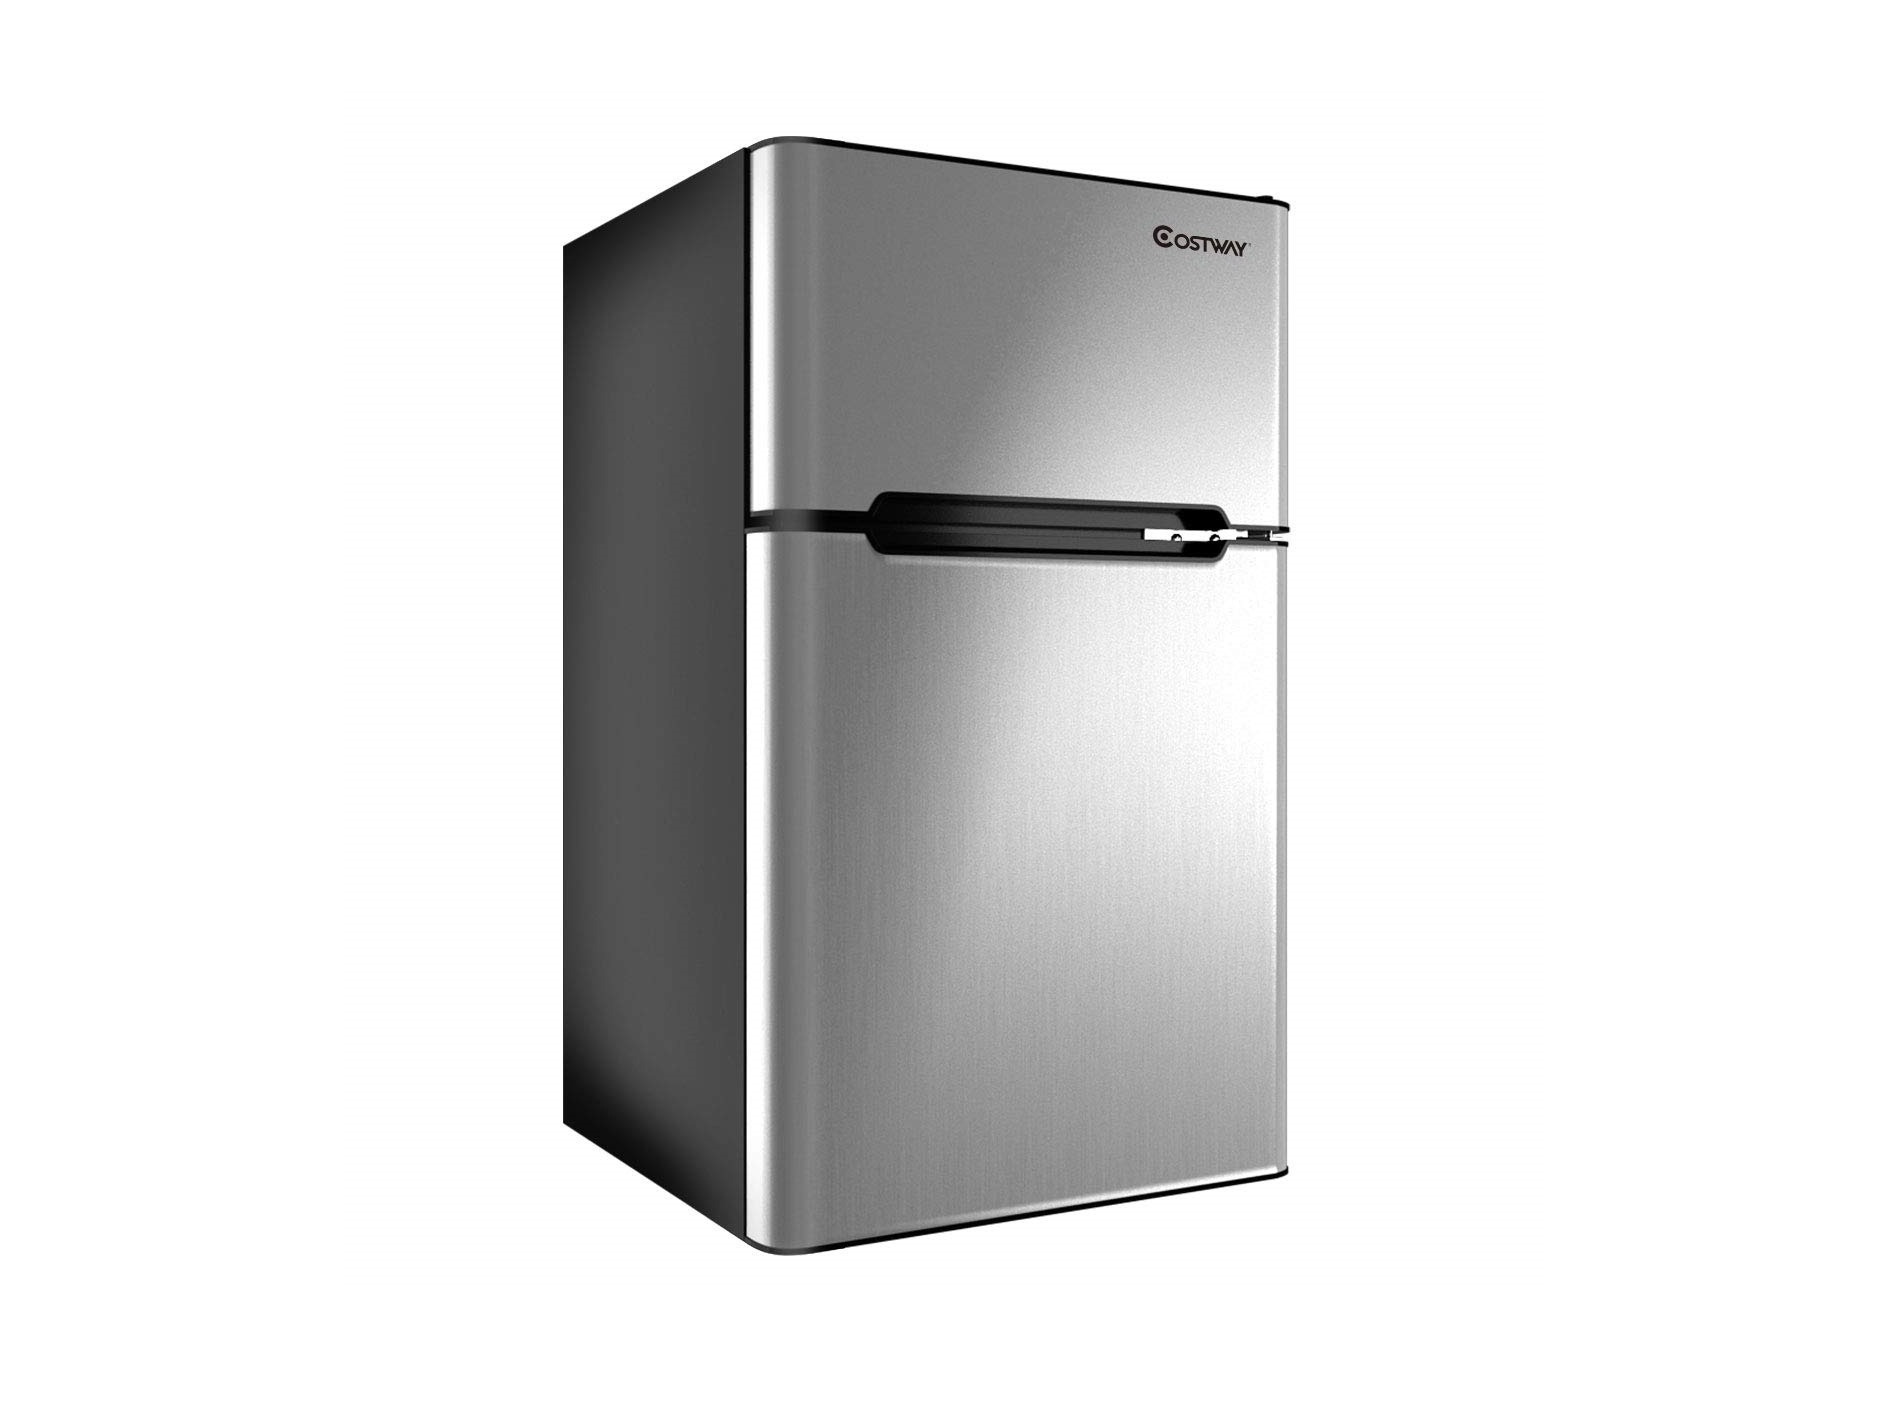 Top Best Refrigerator under 200$ in 2020 reviews